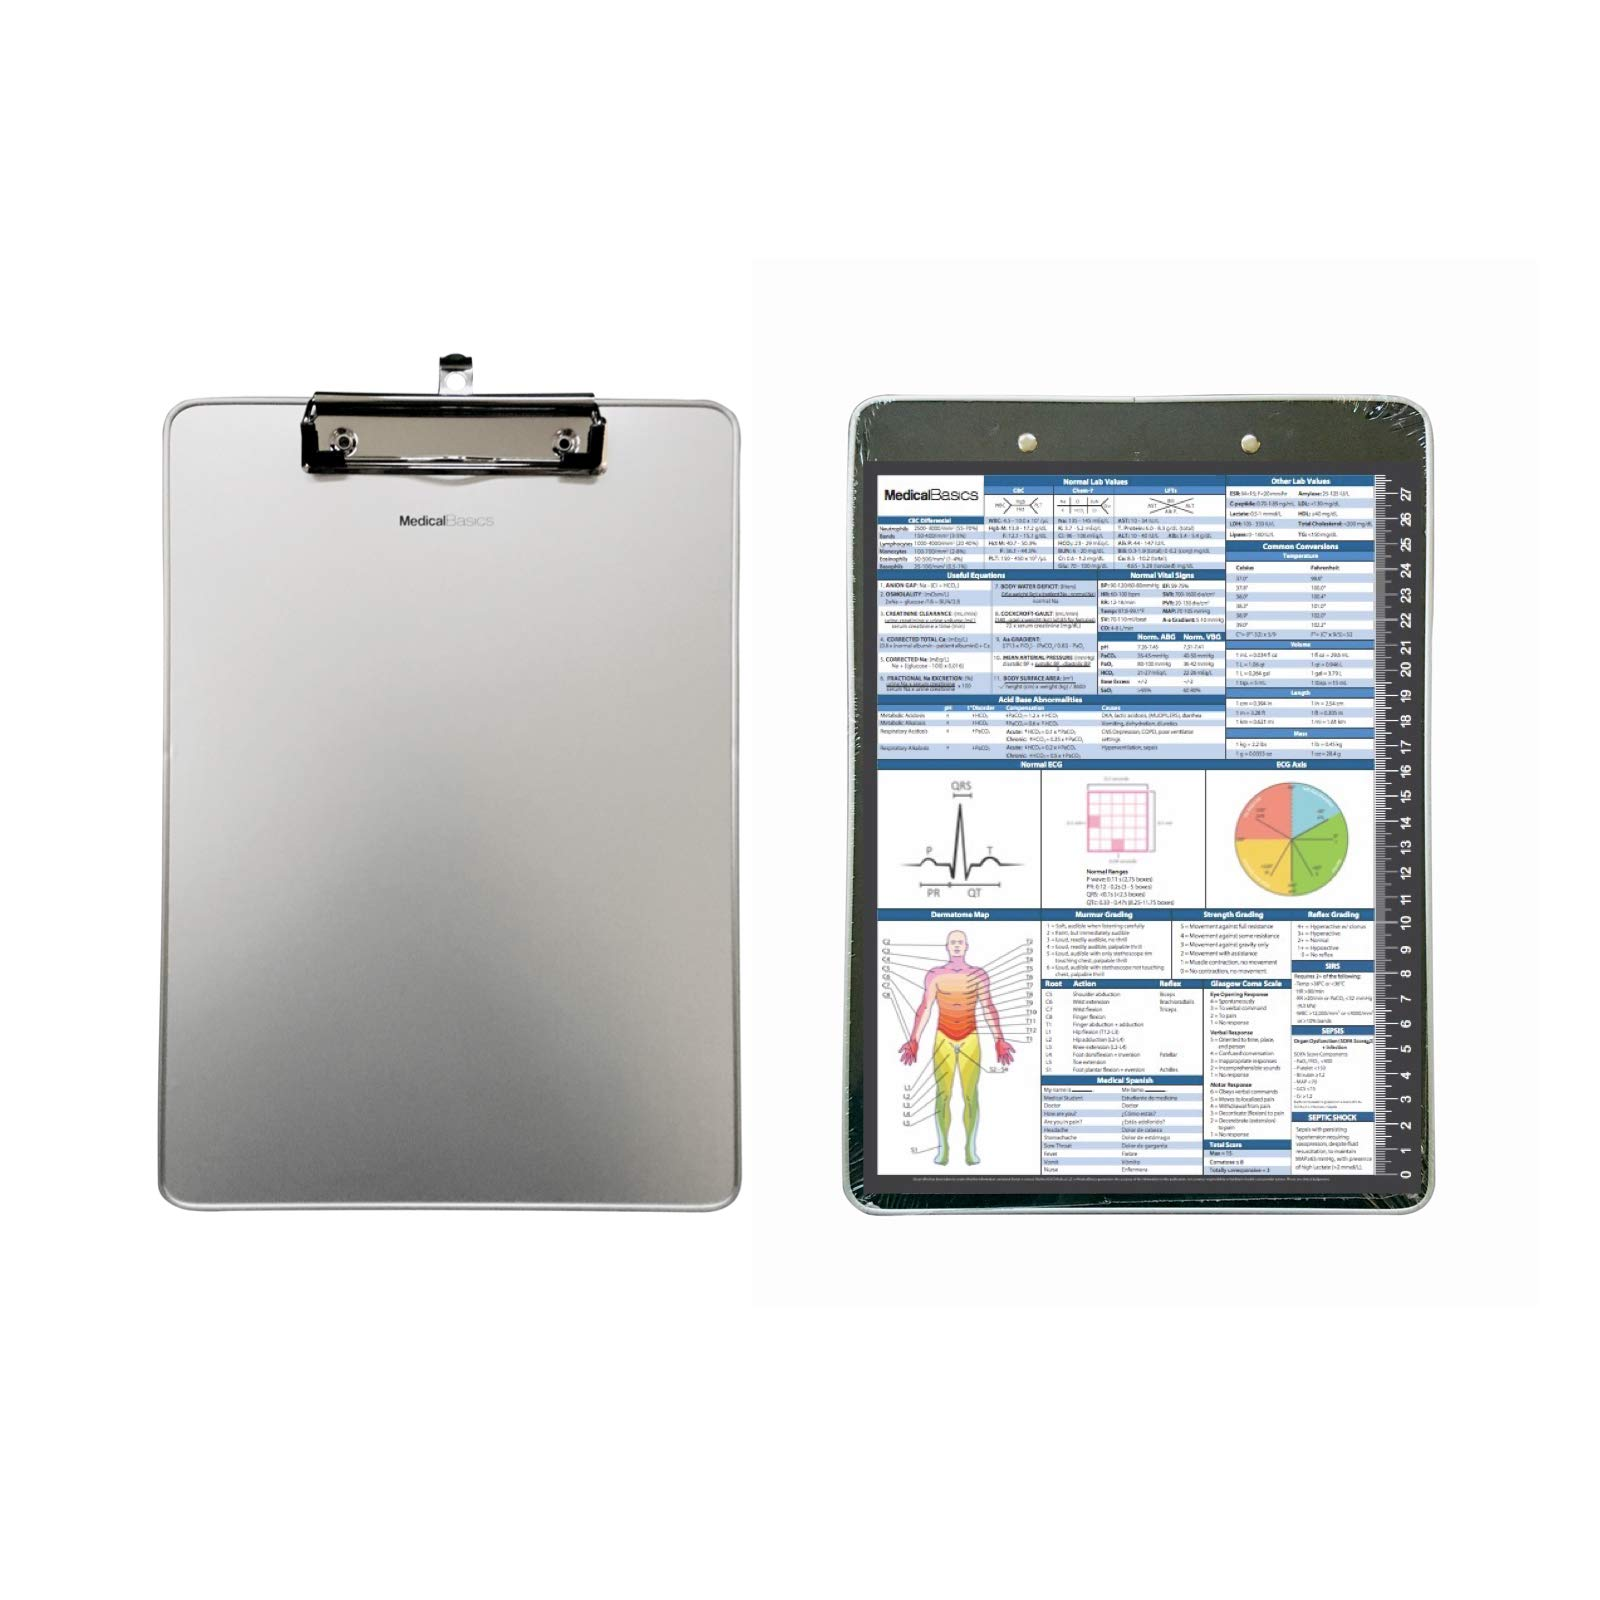 Medical Clipboard (Aluminum) with Quick Medical Reference Sheet (Flat Clip) – Clipboard for Doctors, Medical Students…